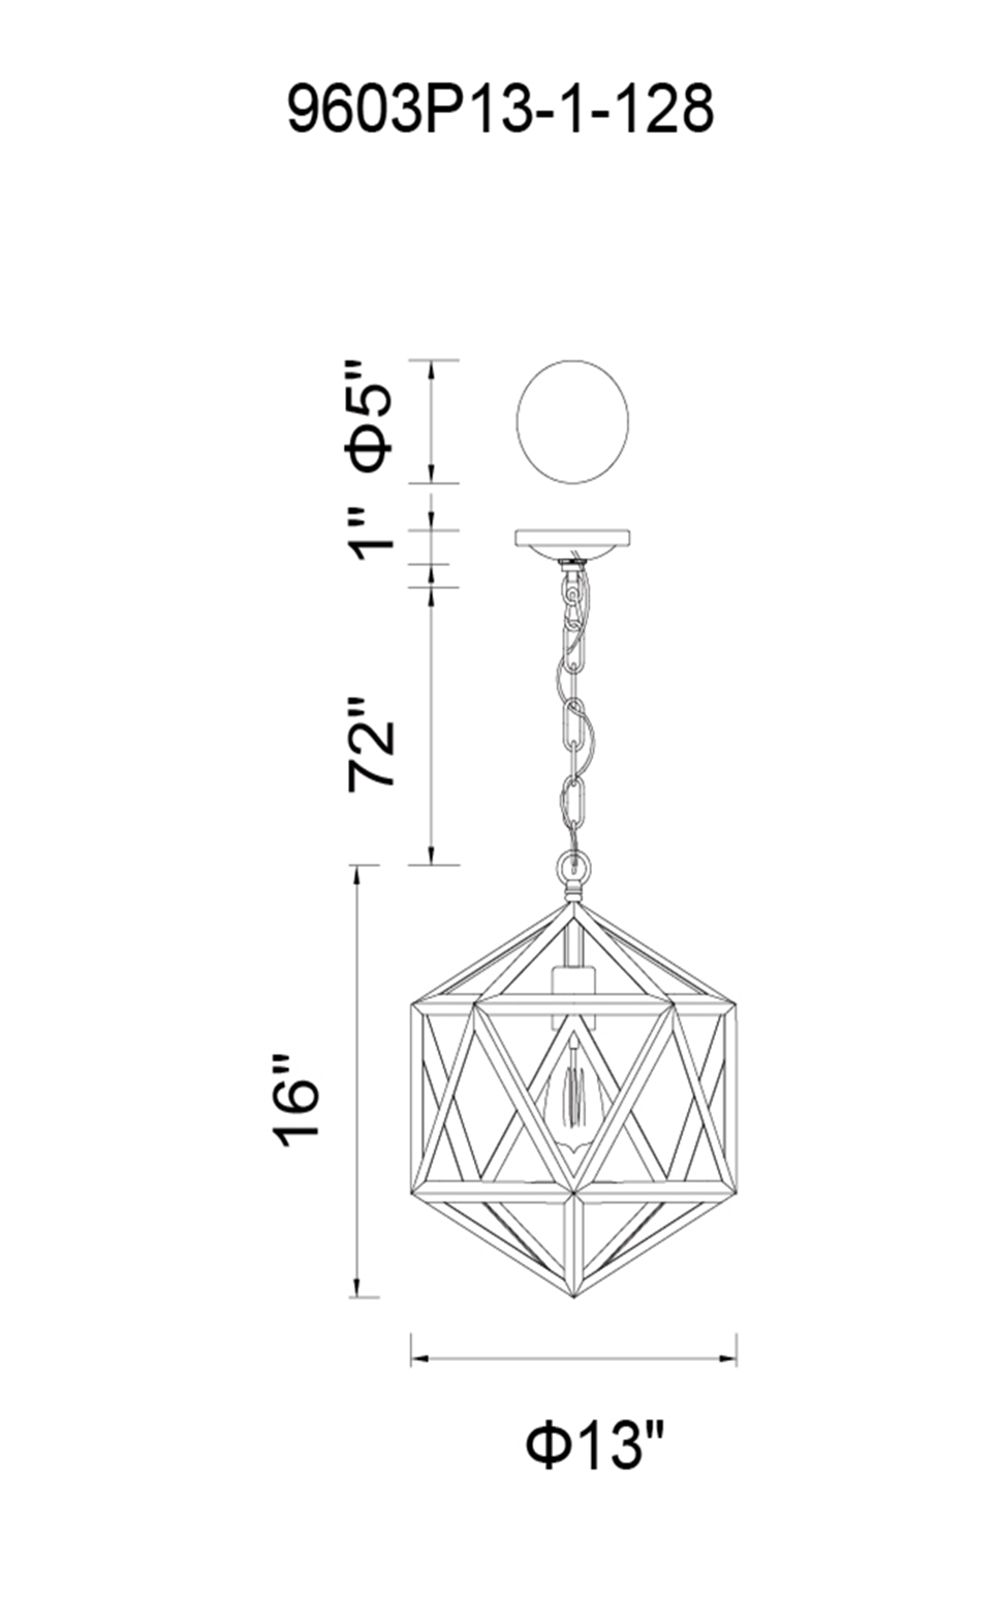 CWI Lighting Dia 1 Light Down Mini Pendant With Antique Copper Model: 9603P13-1-128 Line Drawing